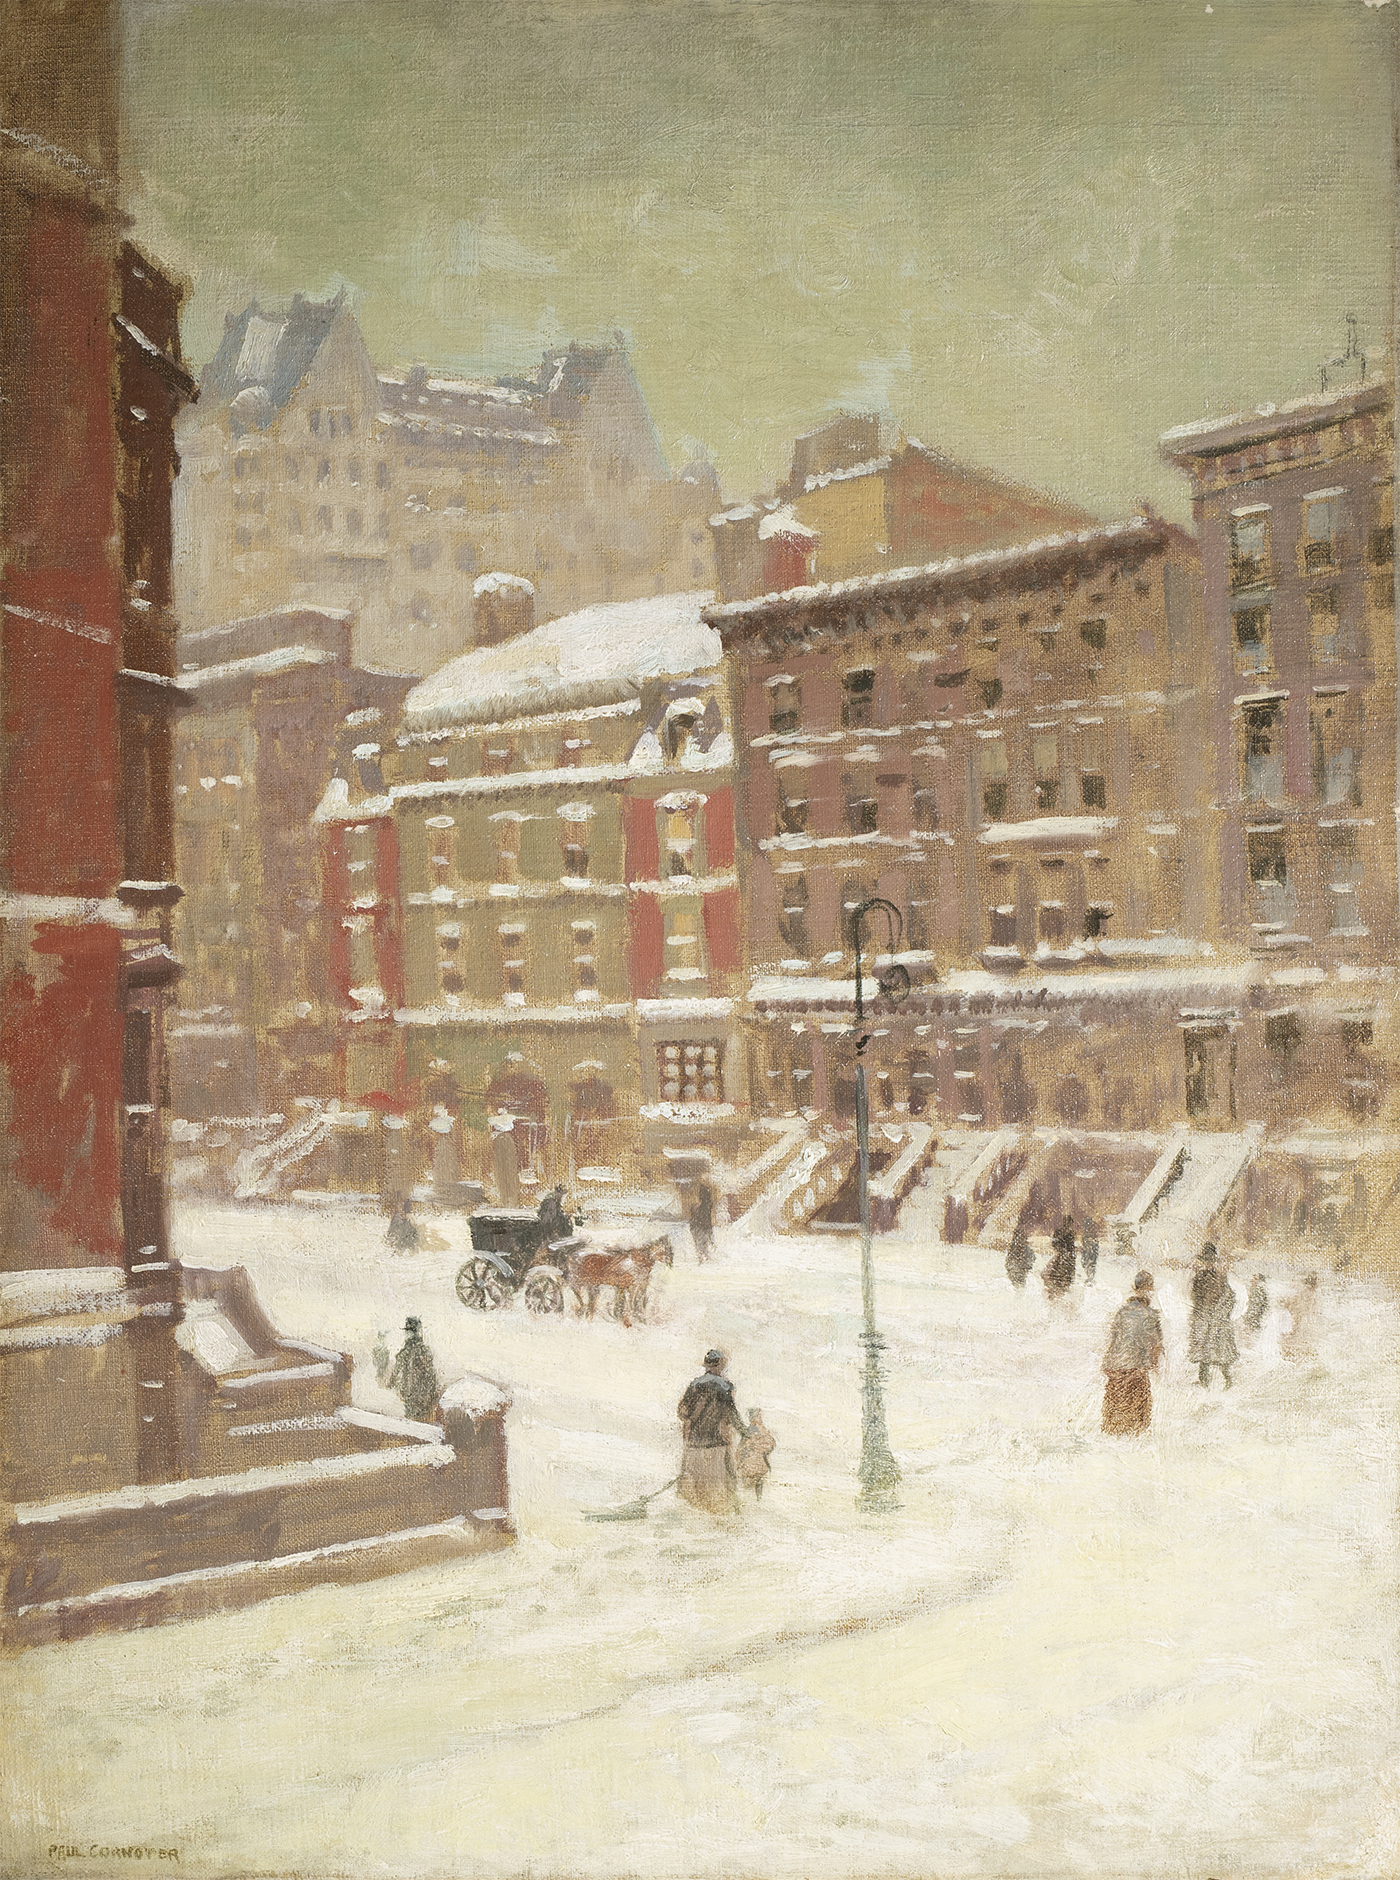 Cornoyer-New York City View in Winter